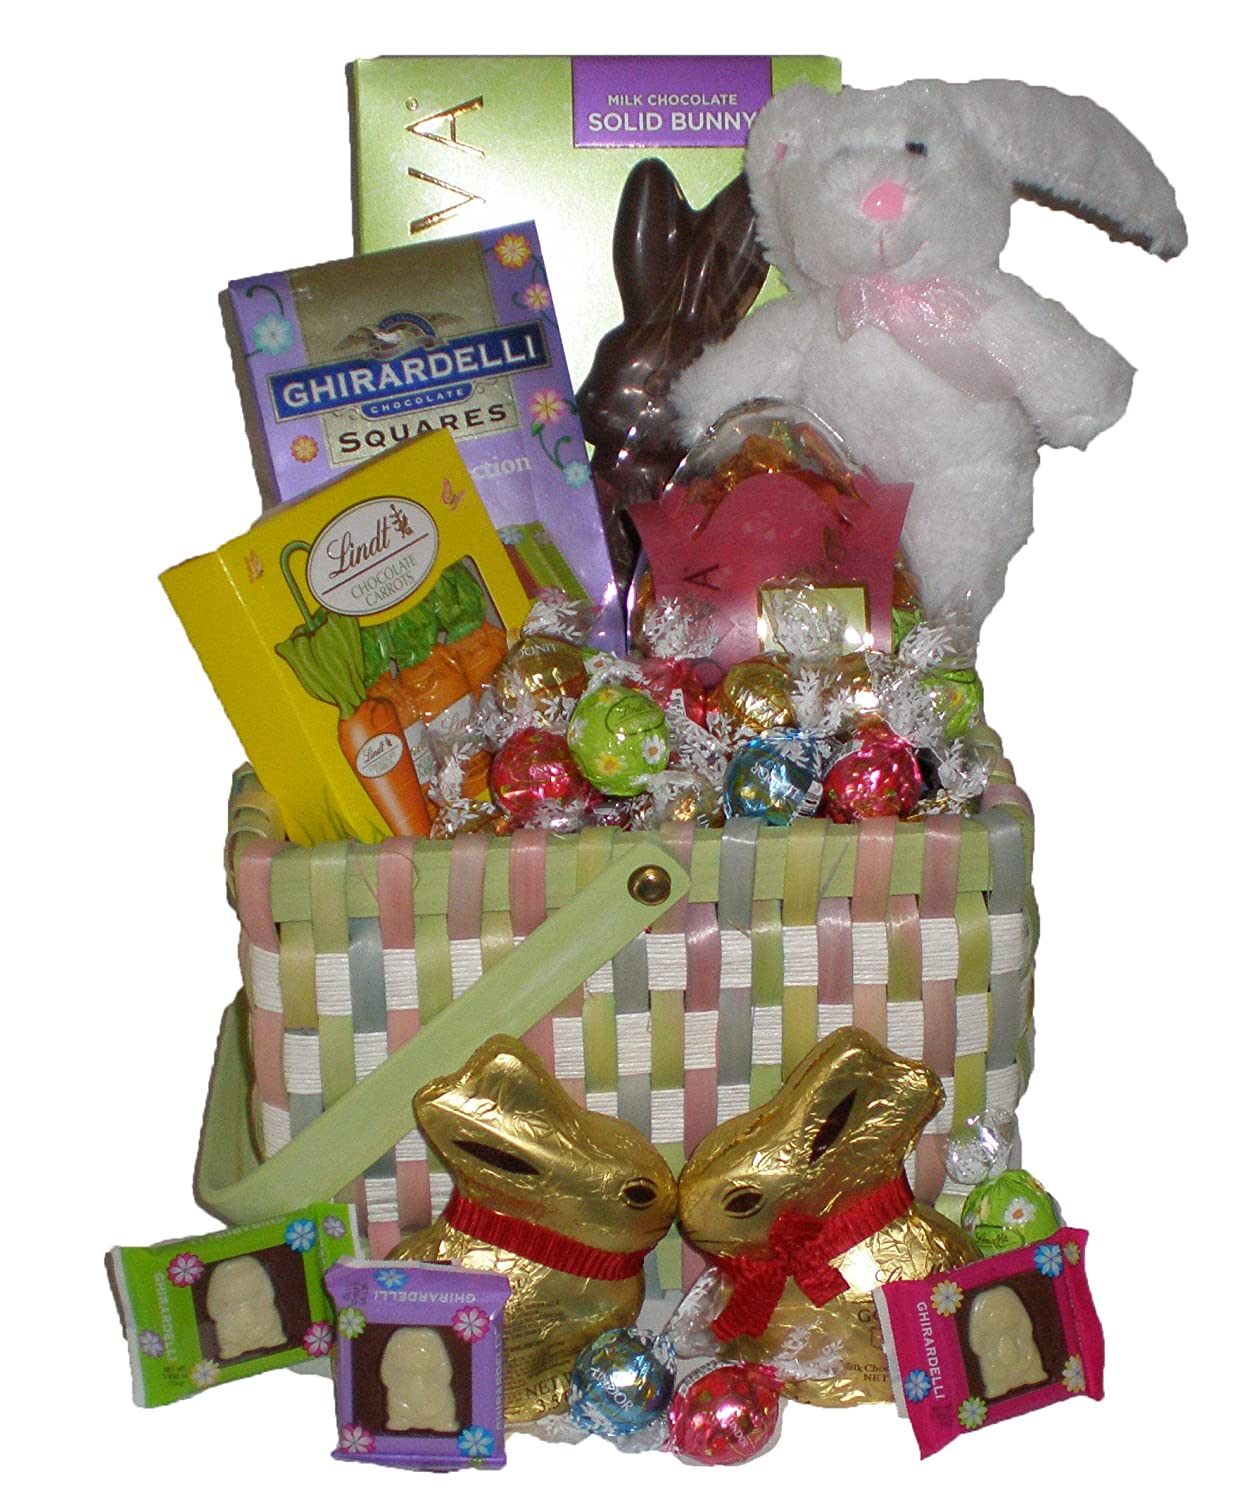 Amazon godiva ghirardelli lindt deluxe easter basket amazon godiva ghirardelli lindt deluxe easter basket gourmet chocolate gifts grocery gourmet food negle Gallery